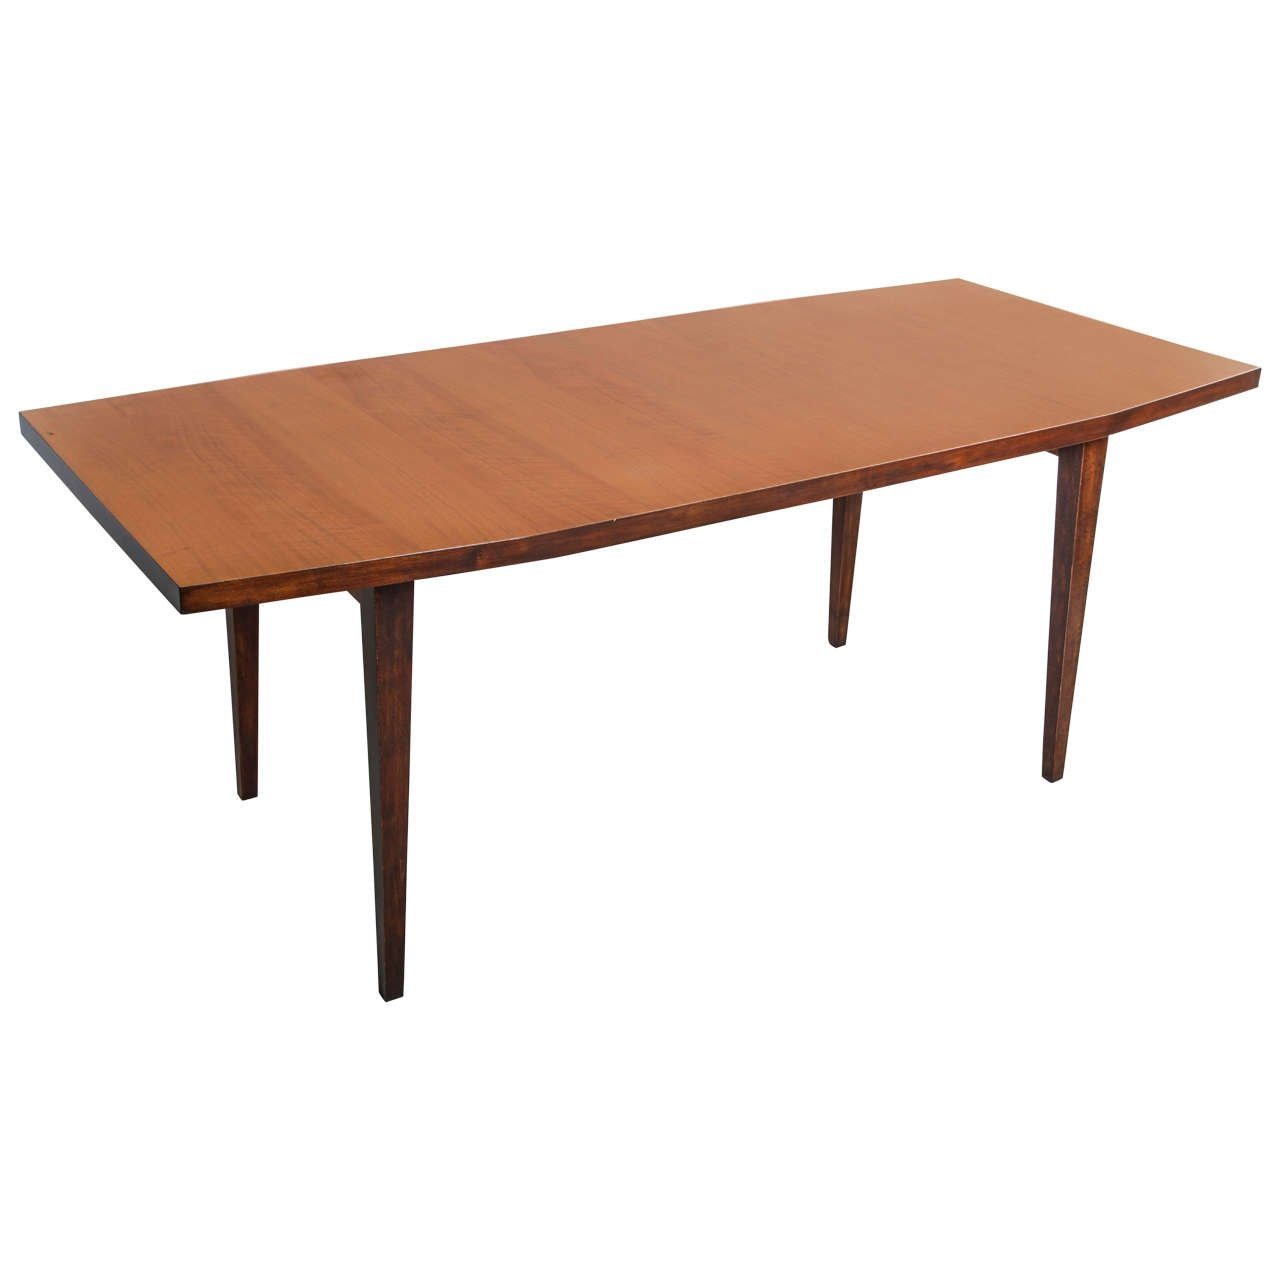 Extra Long Dining Or Conference Table By Kondor Möbel Perfektion 1960s